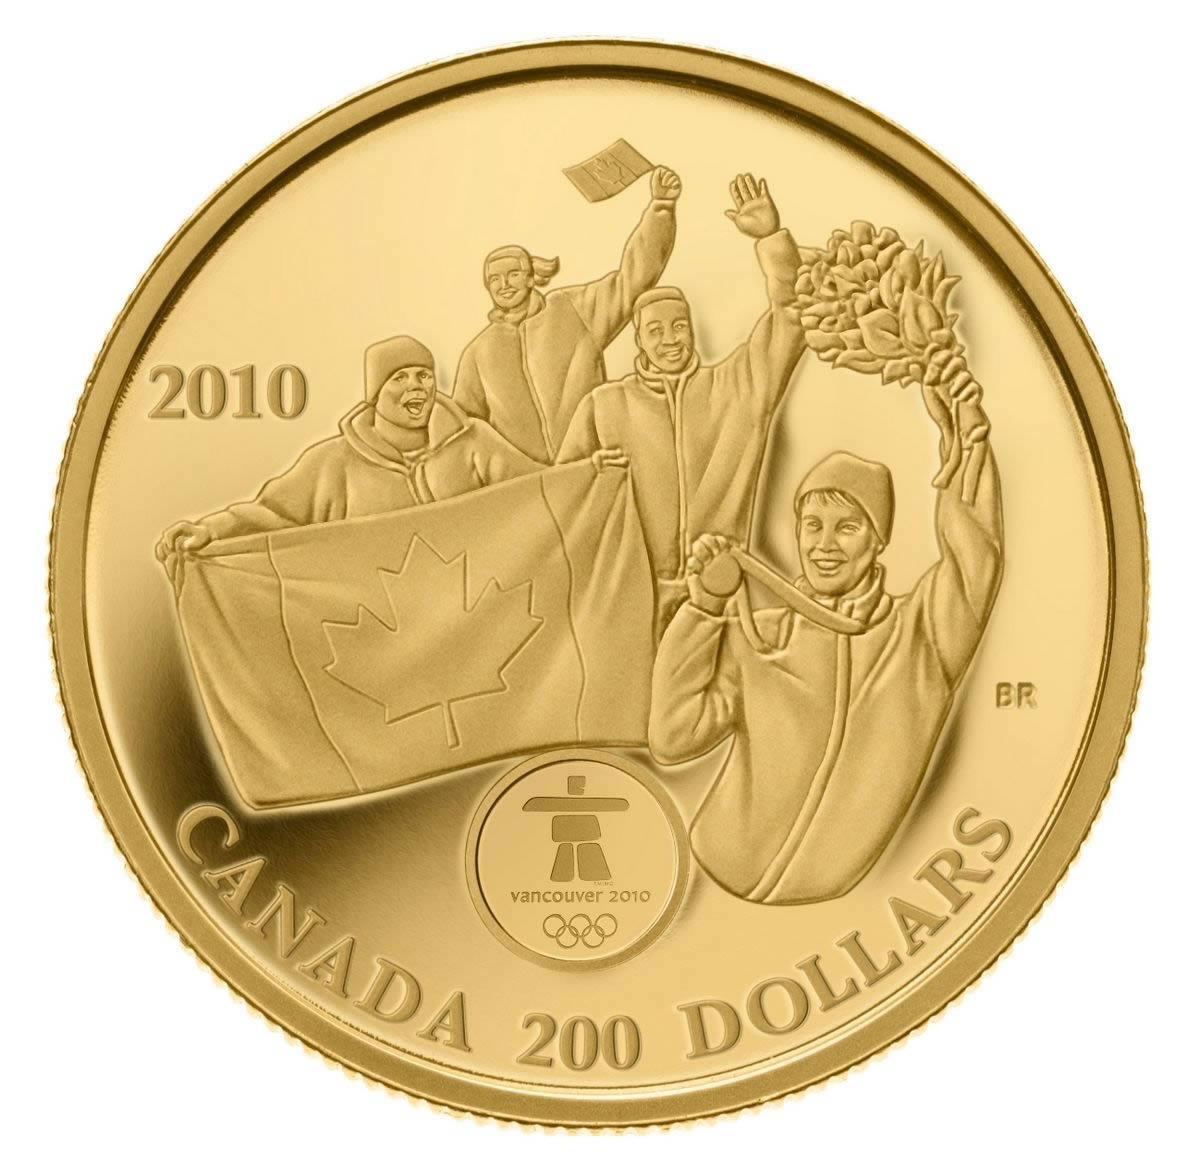 200 2010 Gold Coin Vancouver 2010 Olympic Winter Games